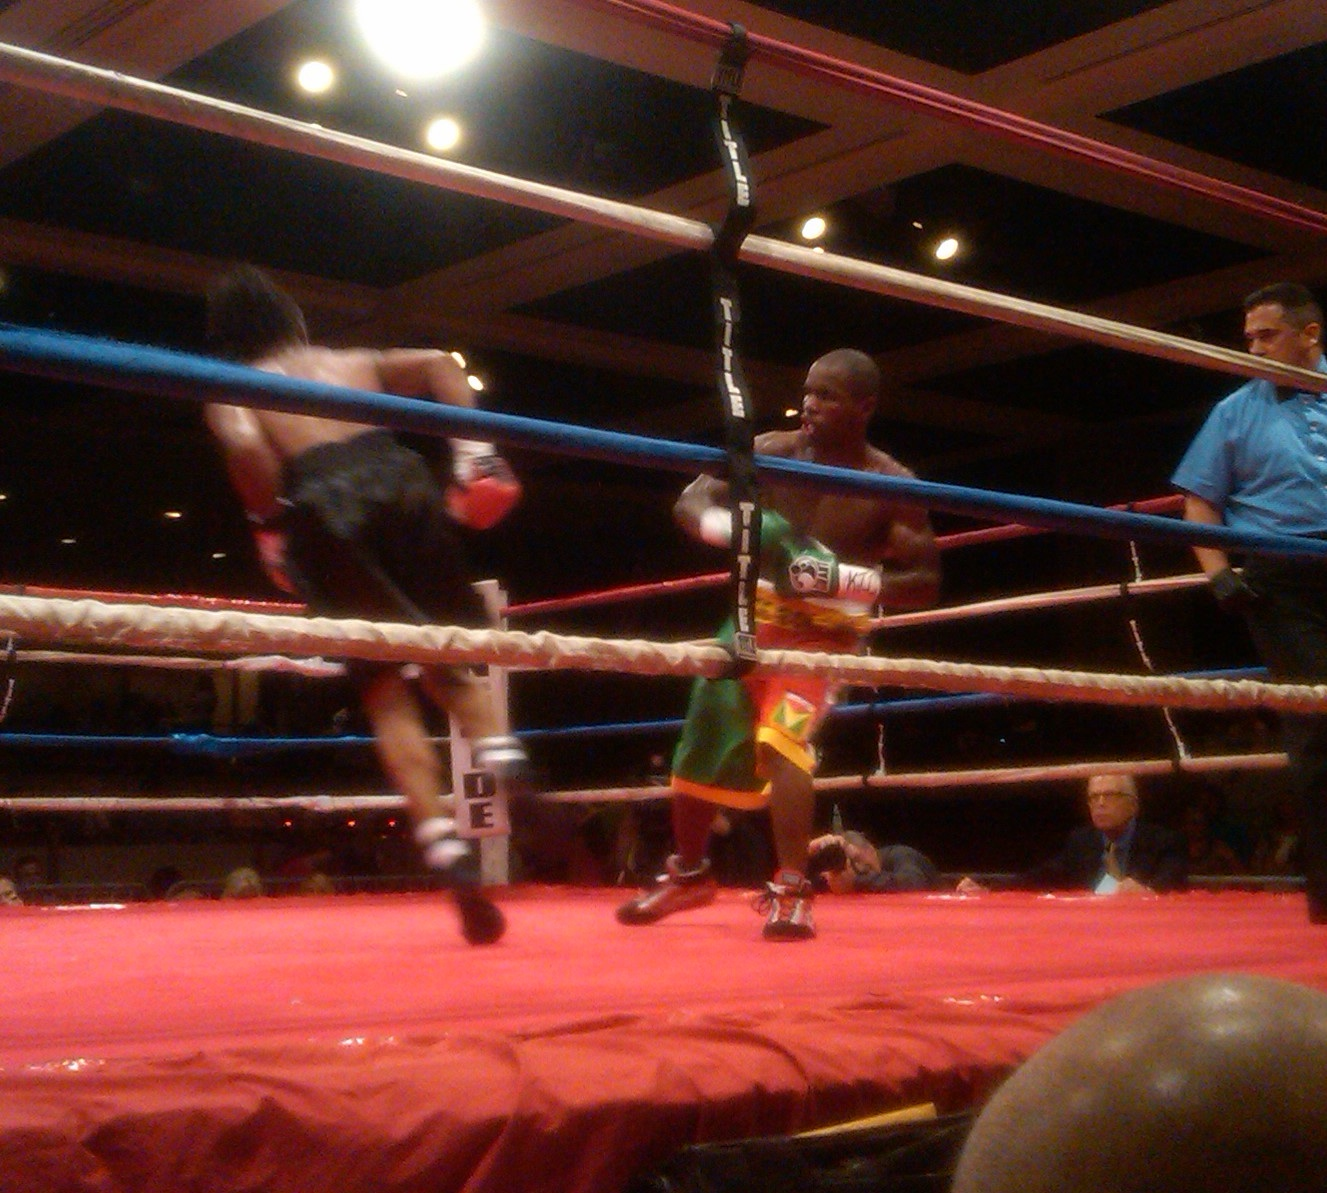 Omar Artis reels from a right hook from Schenectady, NY's Markus Williams during the main event of ARES Promotion's Fight Night IX at The Egg Convention Center.